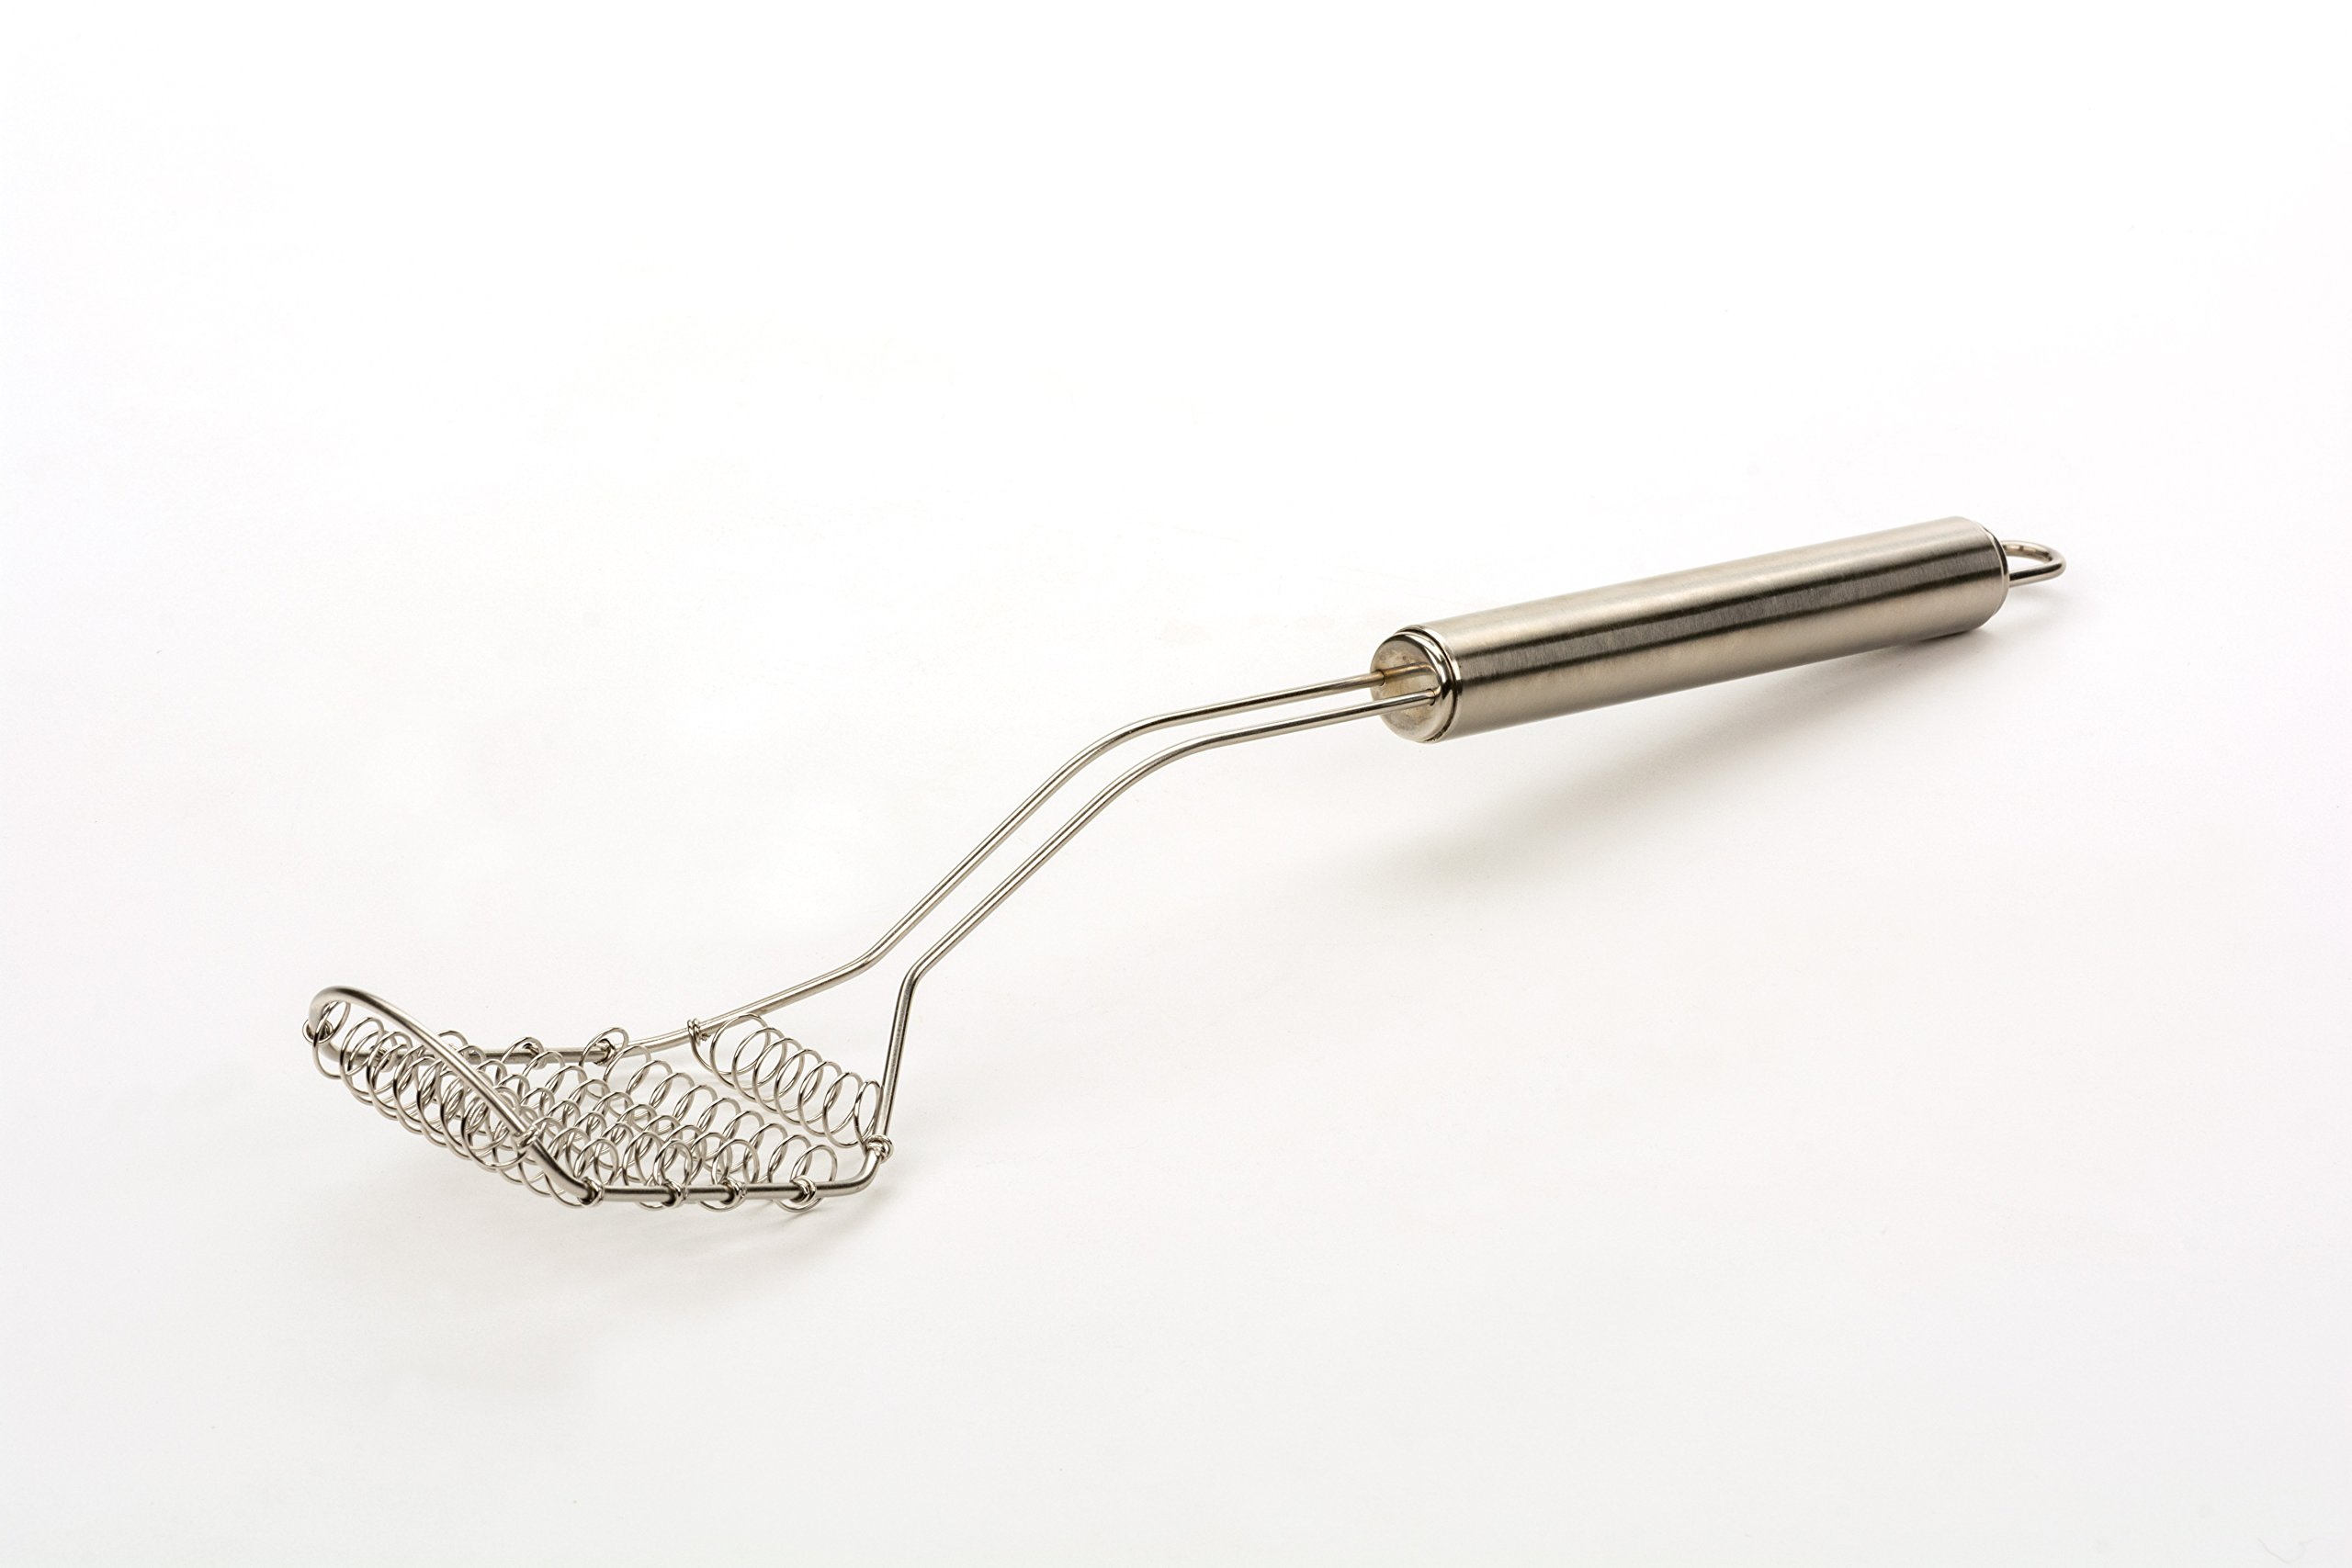 RSVP FSW-14 18/8 Stainless Steel Flat Sauce Whisk by the Everyday Gourmet